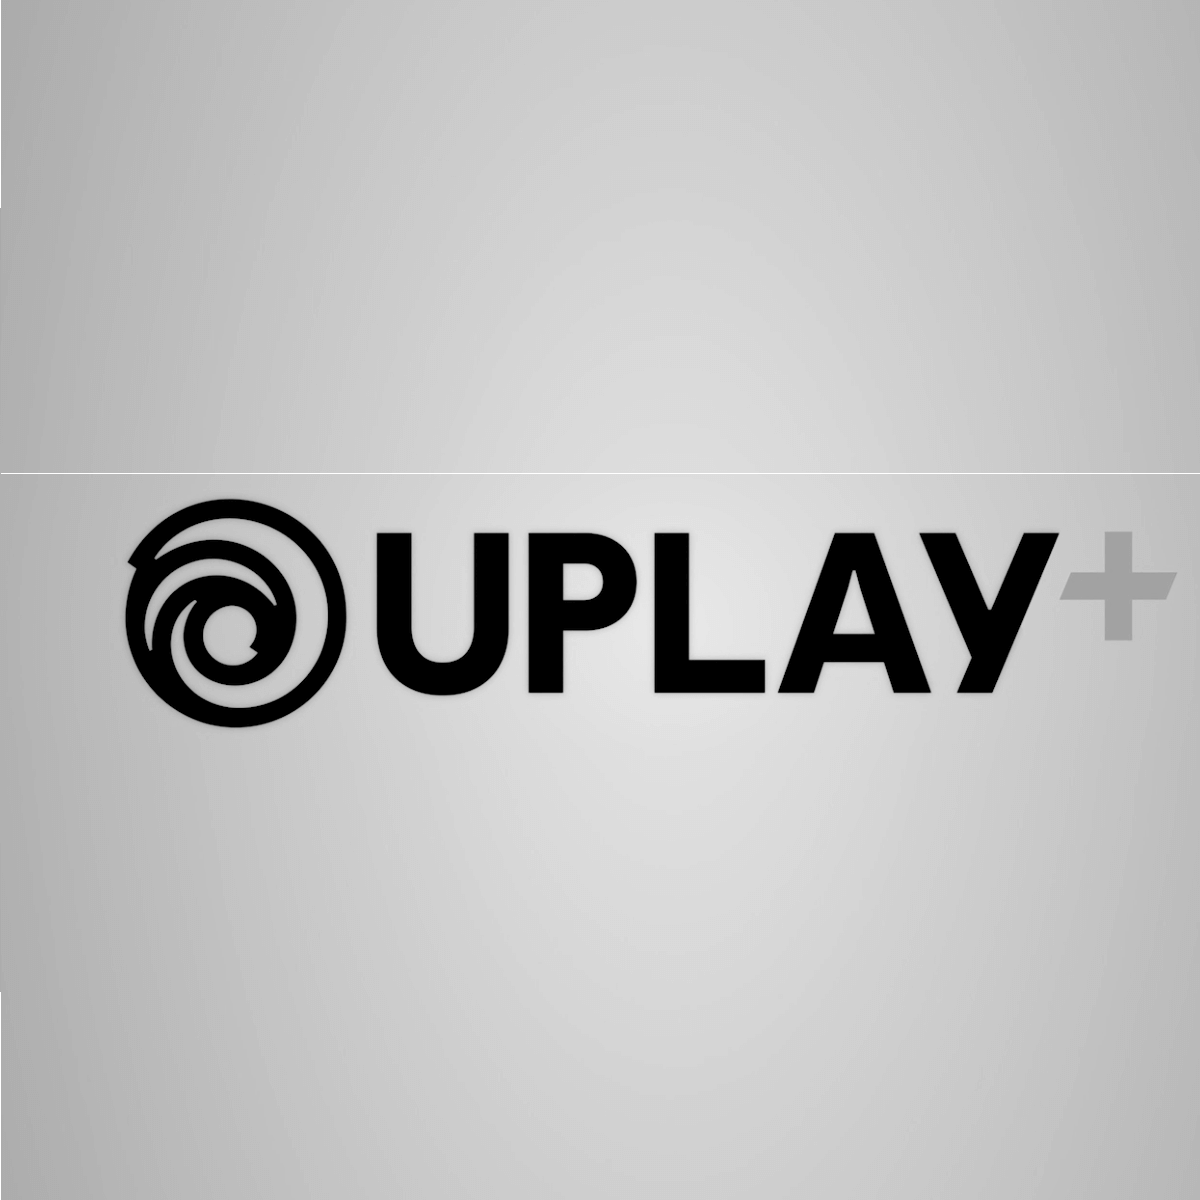 What To Do When Your Uplay Achievements Are Not Syncing Achievement Ubisoft Sync